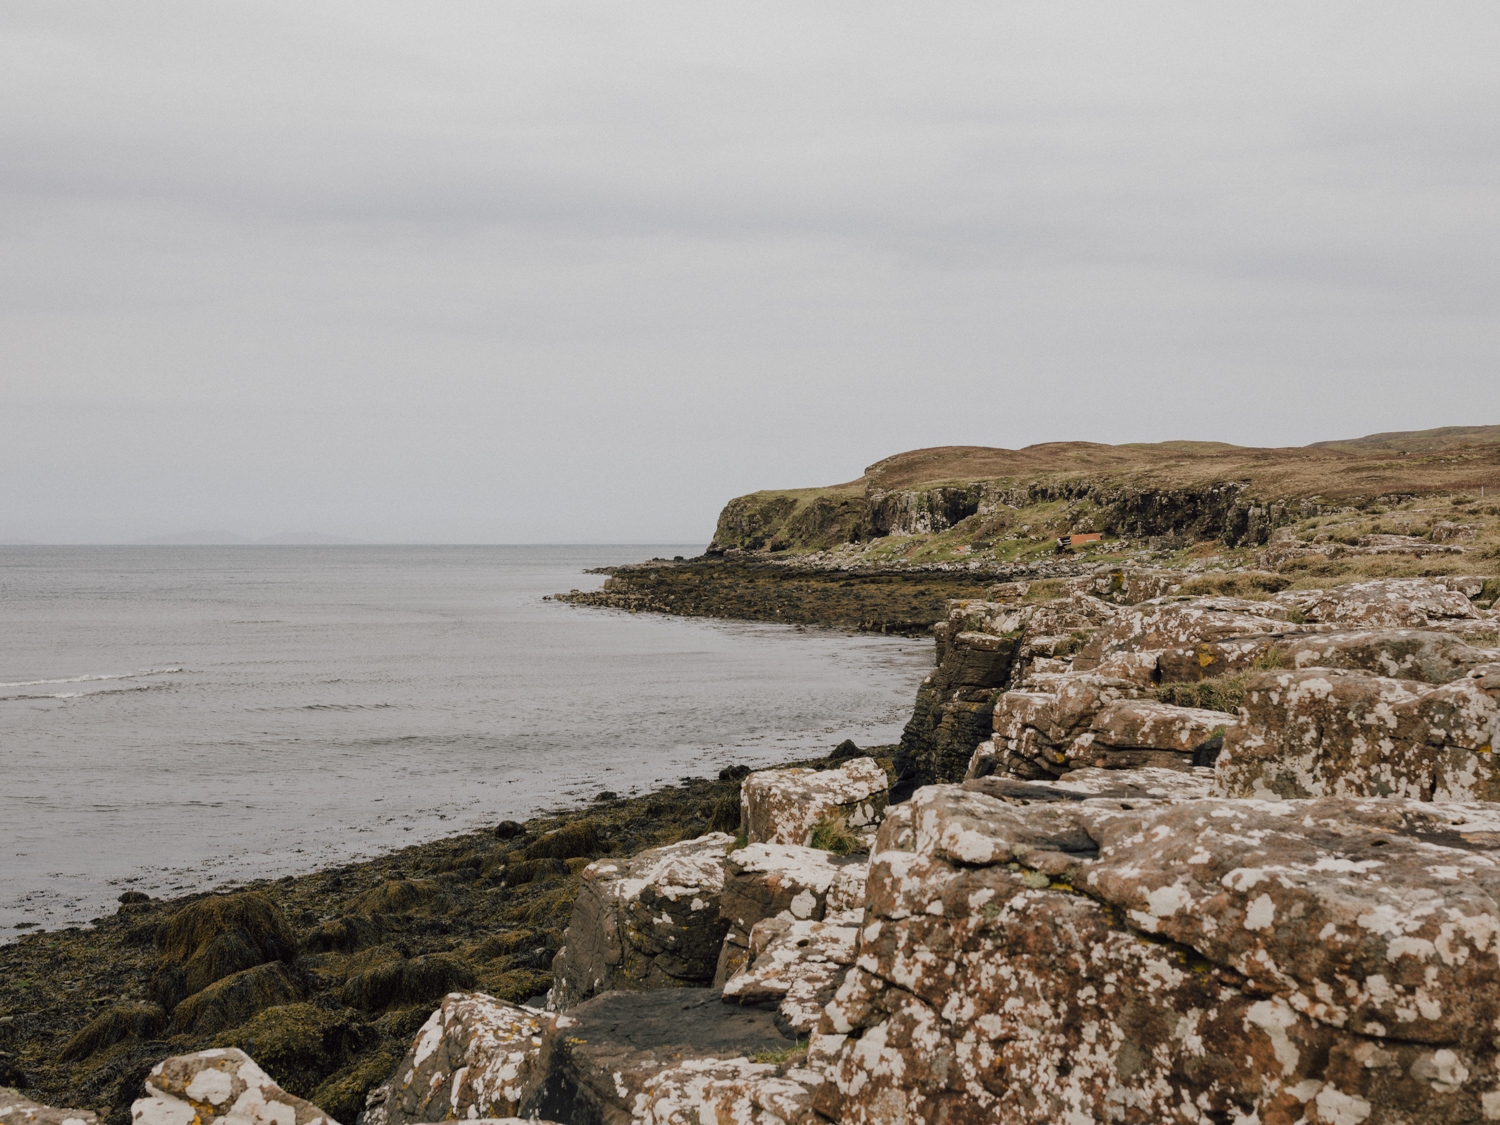 capyture-wedding-photographer-destination-nature-intimate-wedding-isle-of-skye-scotland-418